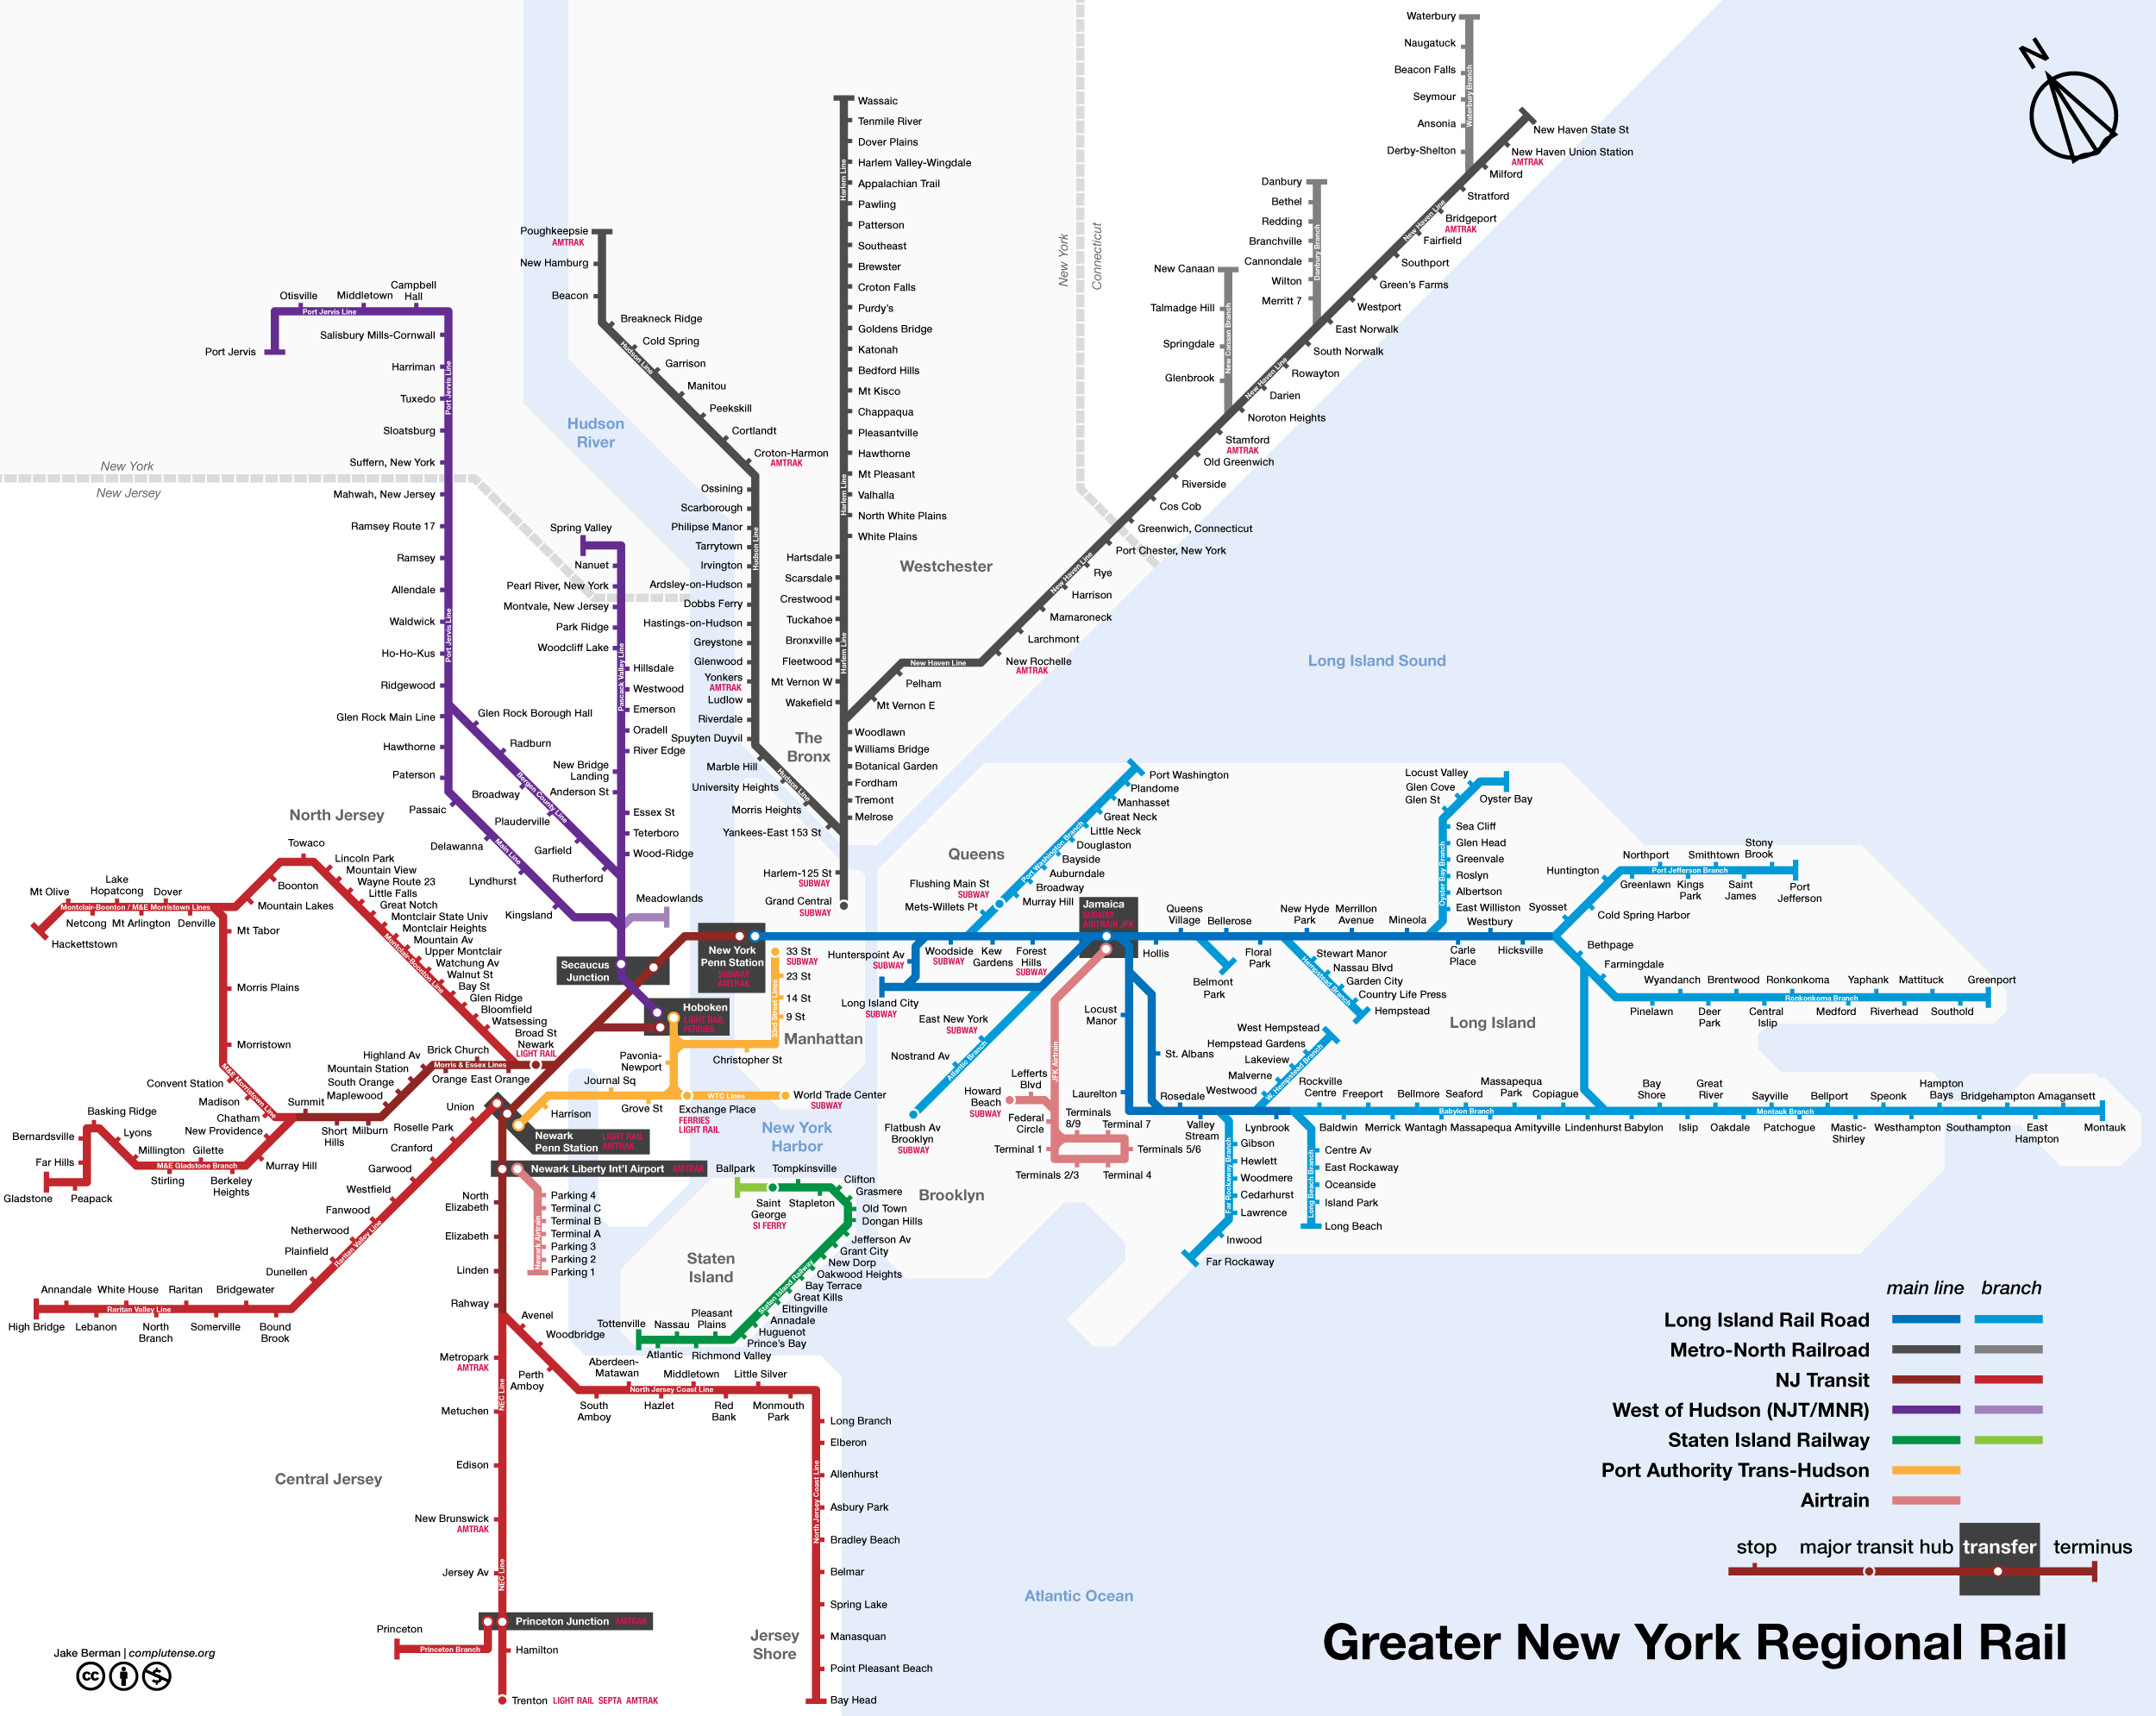 penn map state maps with Map Of New York City Regional Rail on Map of new york city regional rail likewise The Punic Wars together with Maps1874 in addition Pennsylvania Map additionally Pennsylvania Physical Maps.